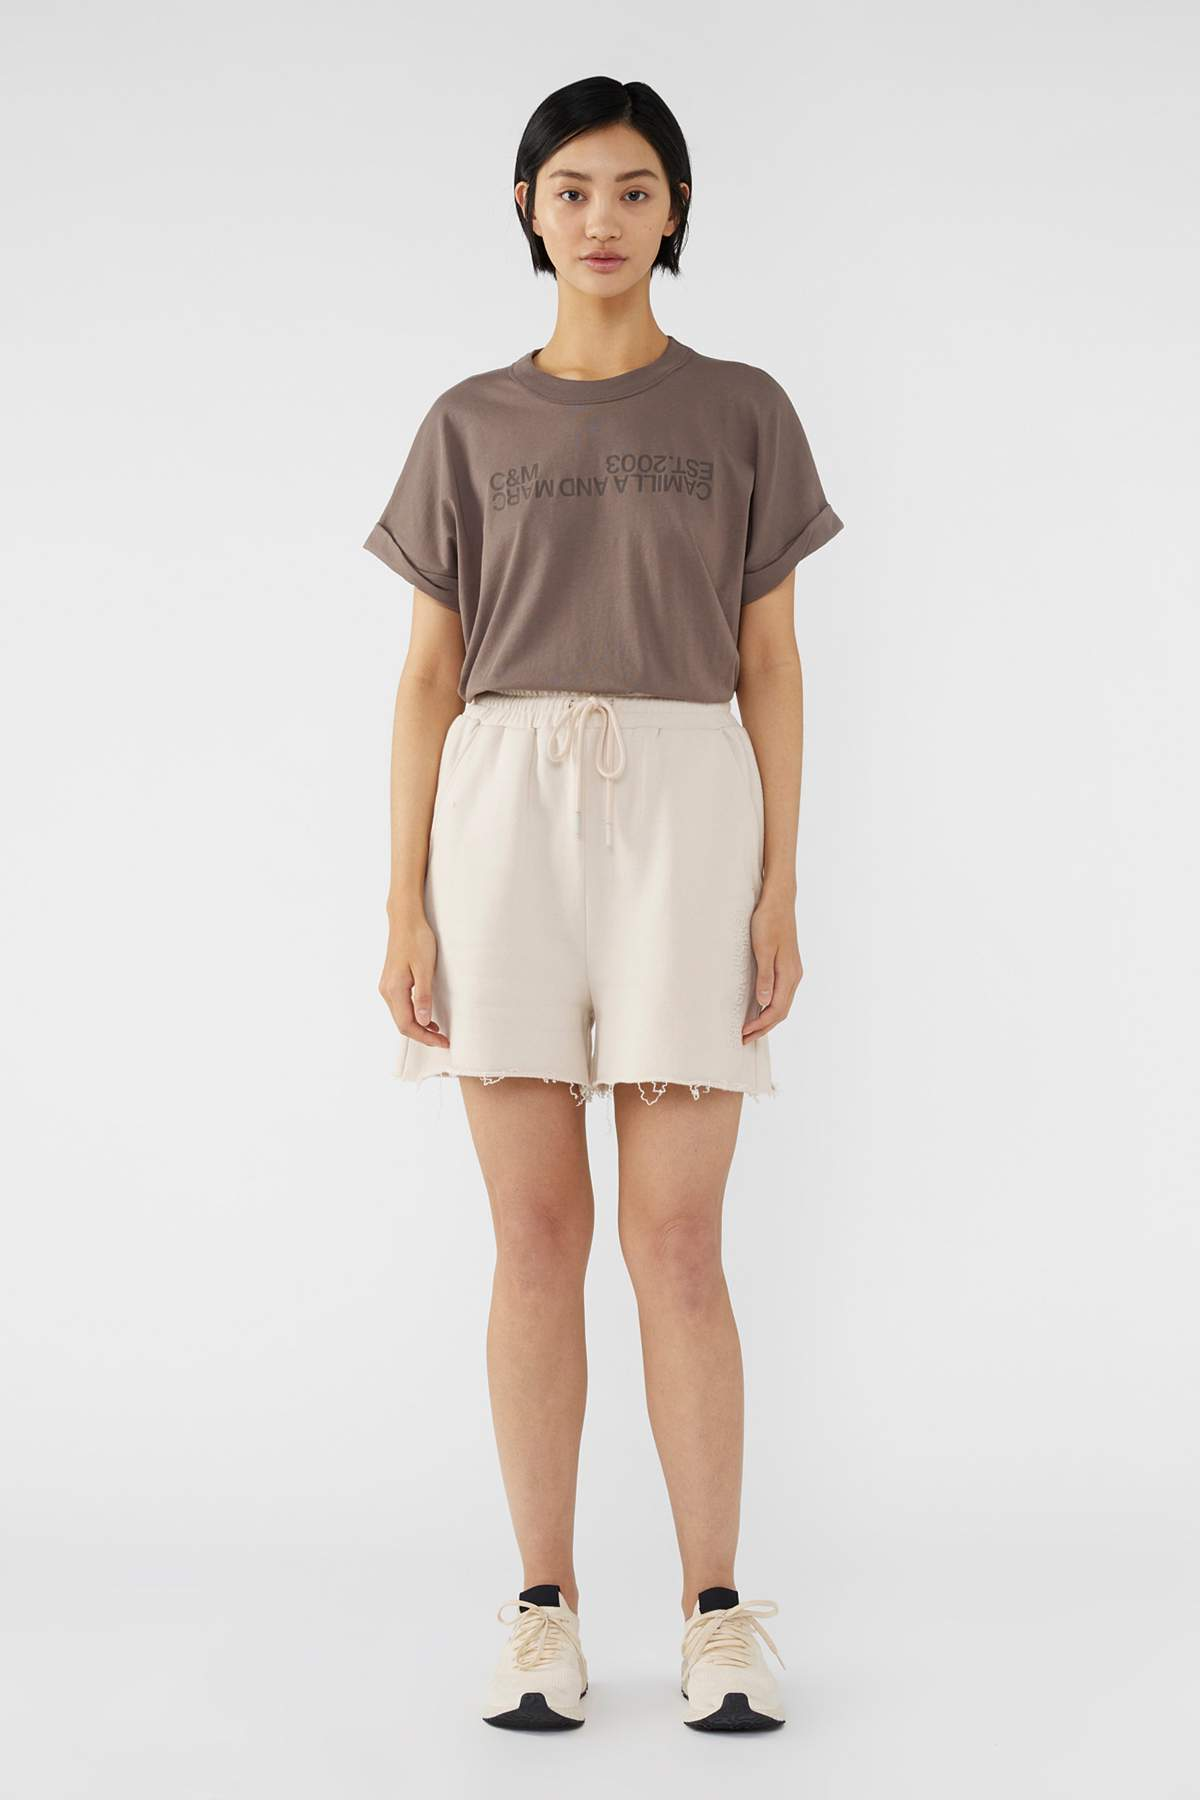 Camilla and Marc Huntington 2.0 Tee in Ash